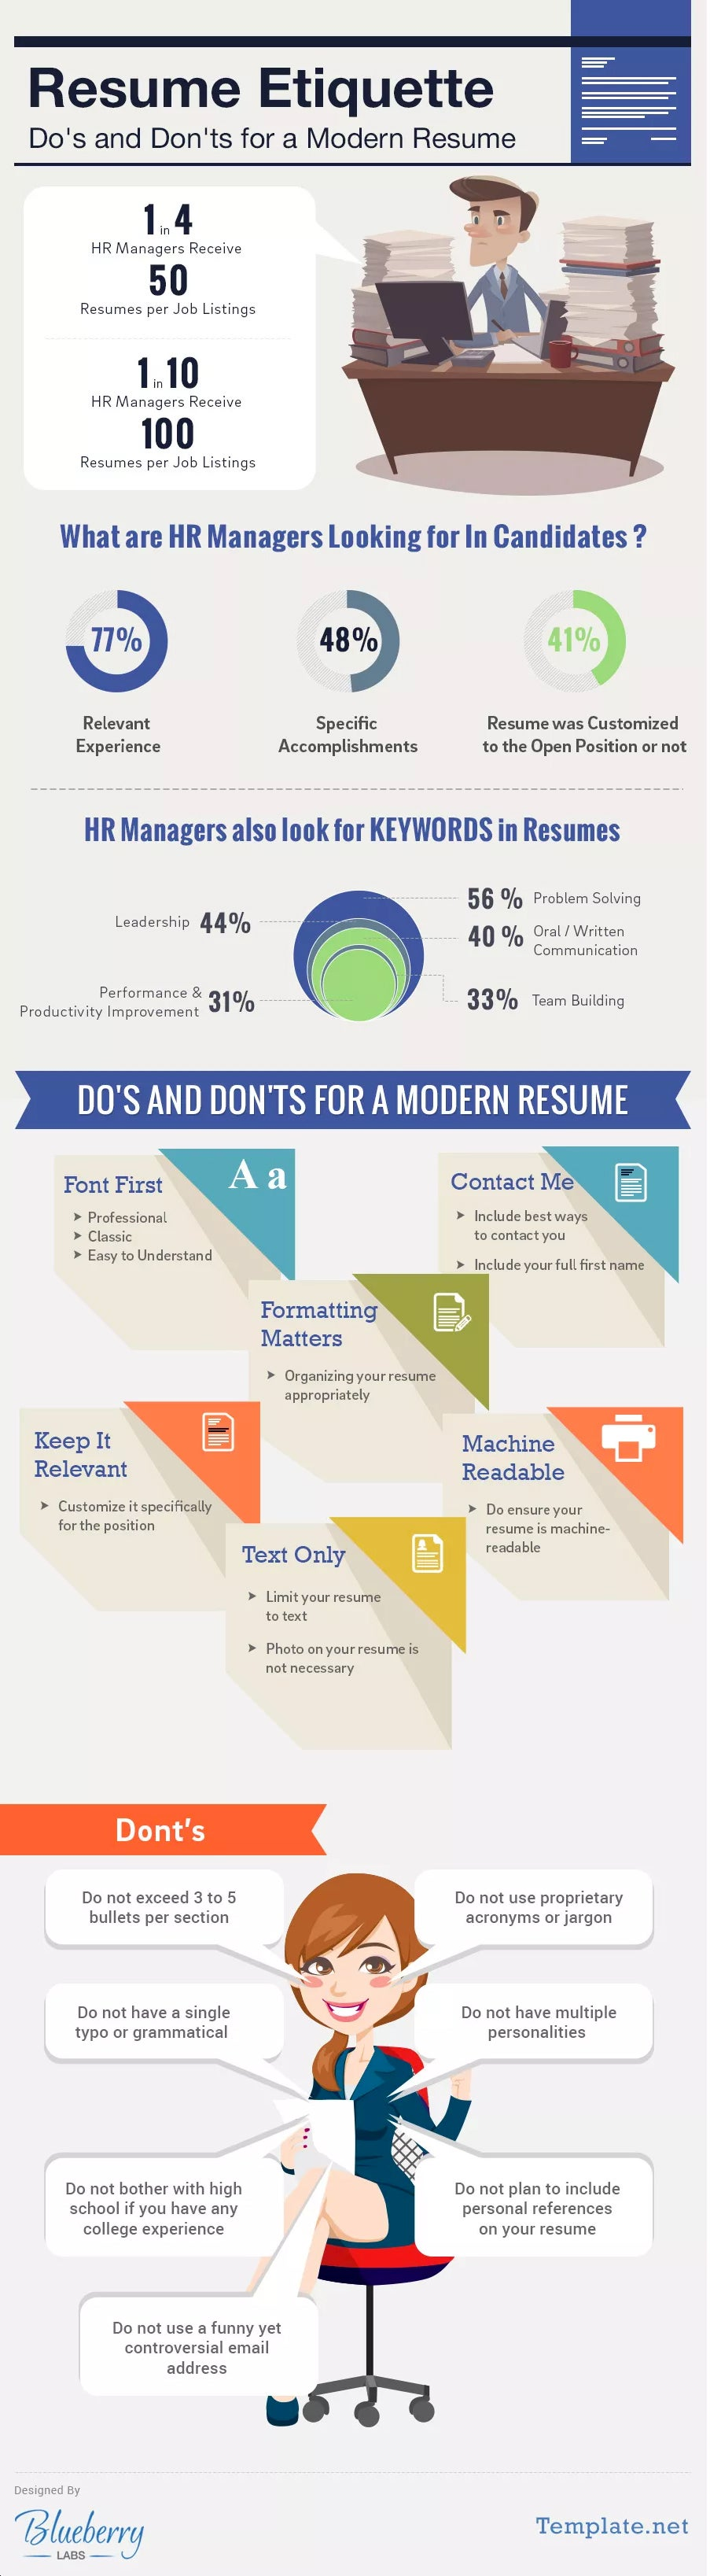 The dos and donts of the modern resum infographic the dos and donts of the modern resume infographic thecheapjerseys Image collections